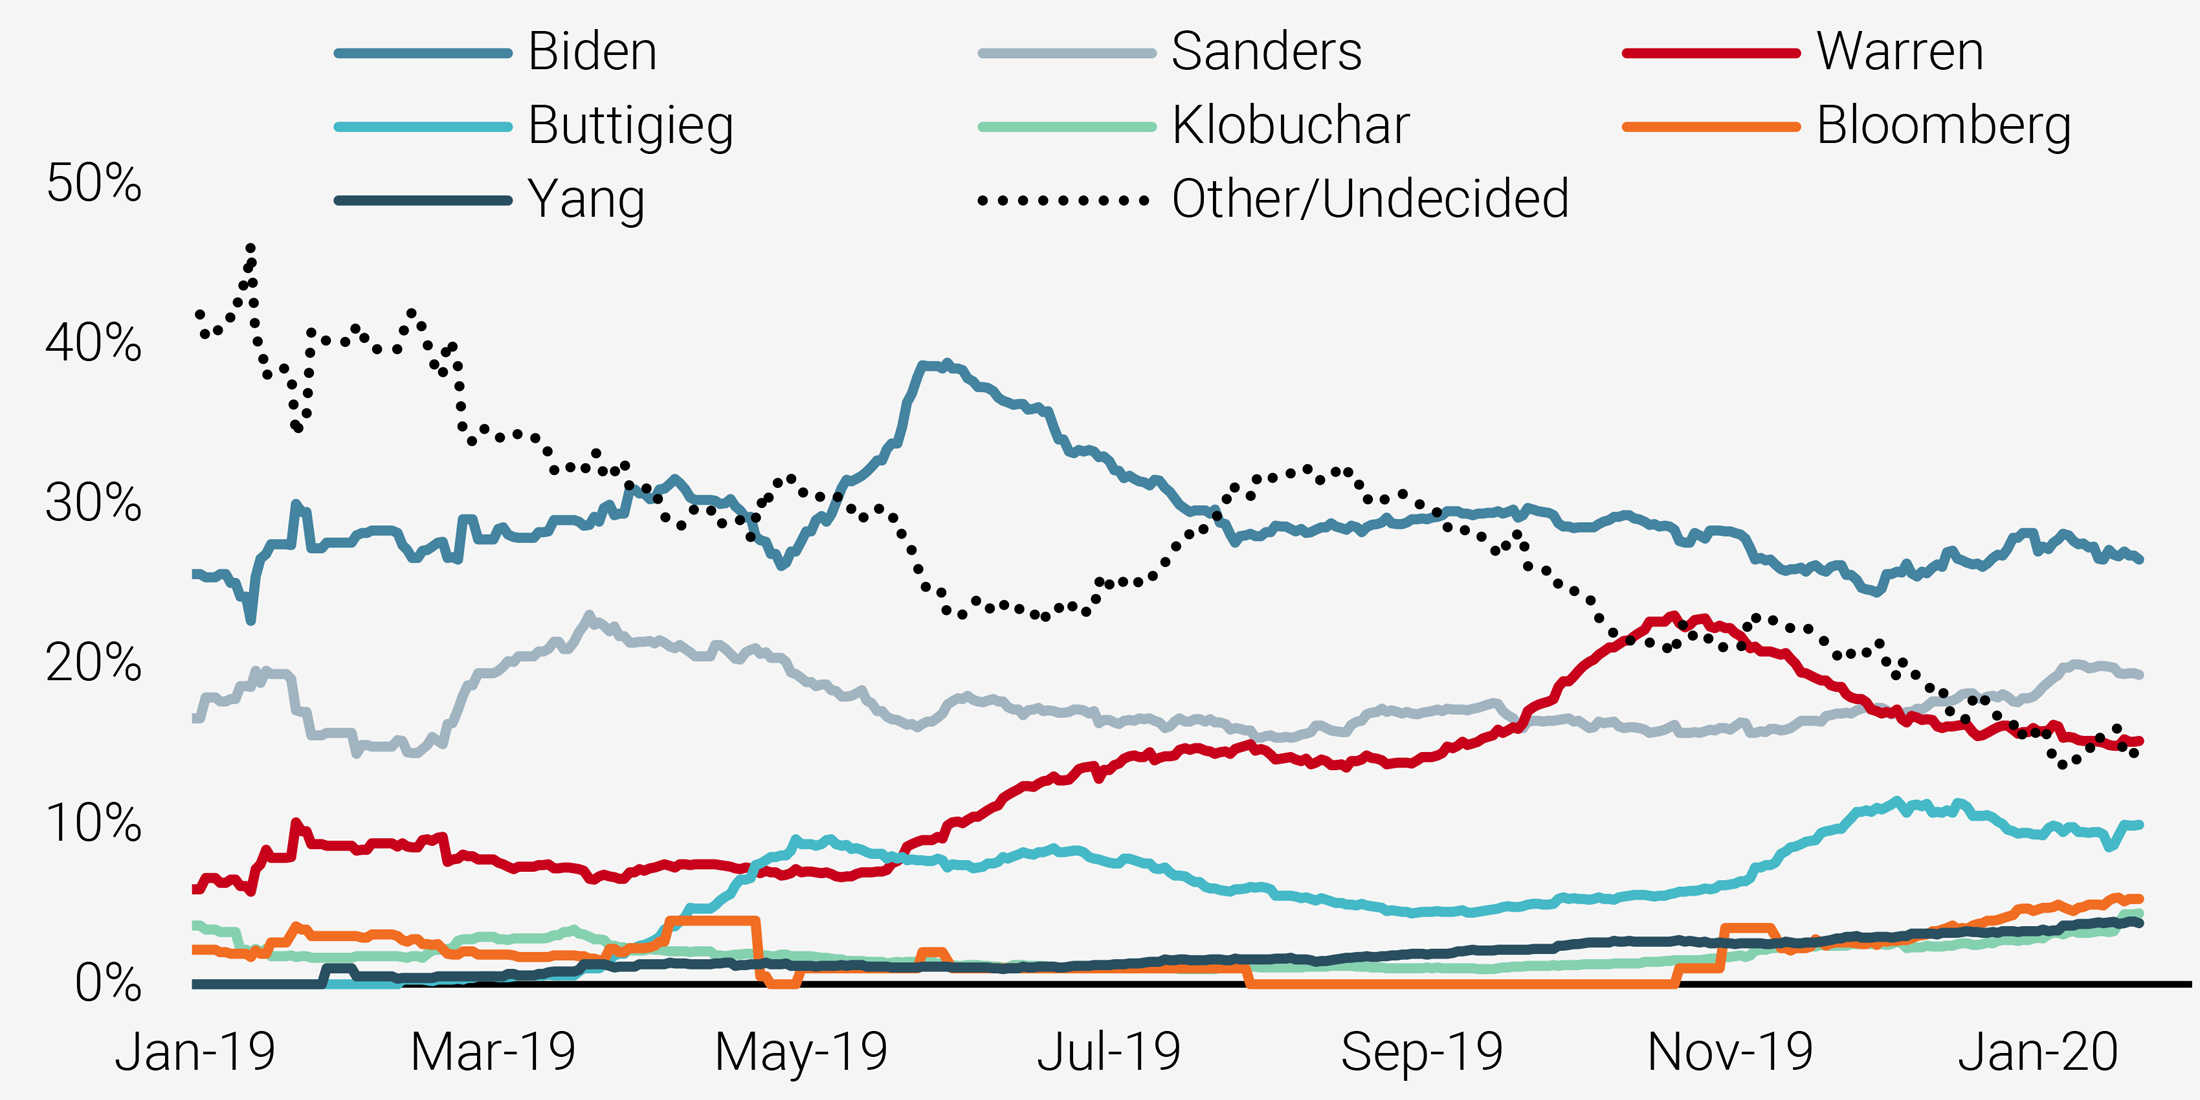 Figure 2: Democratic National Primary Polling (30-day moving average)